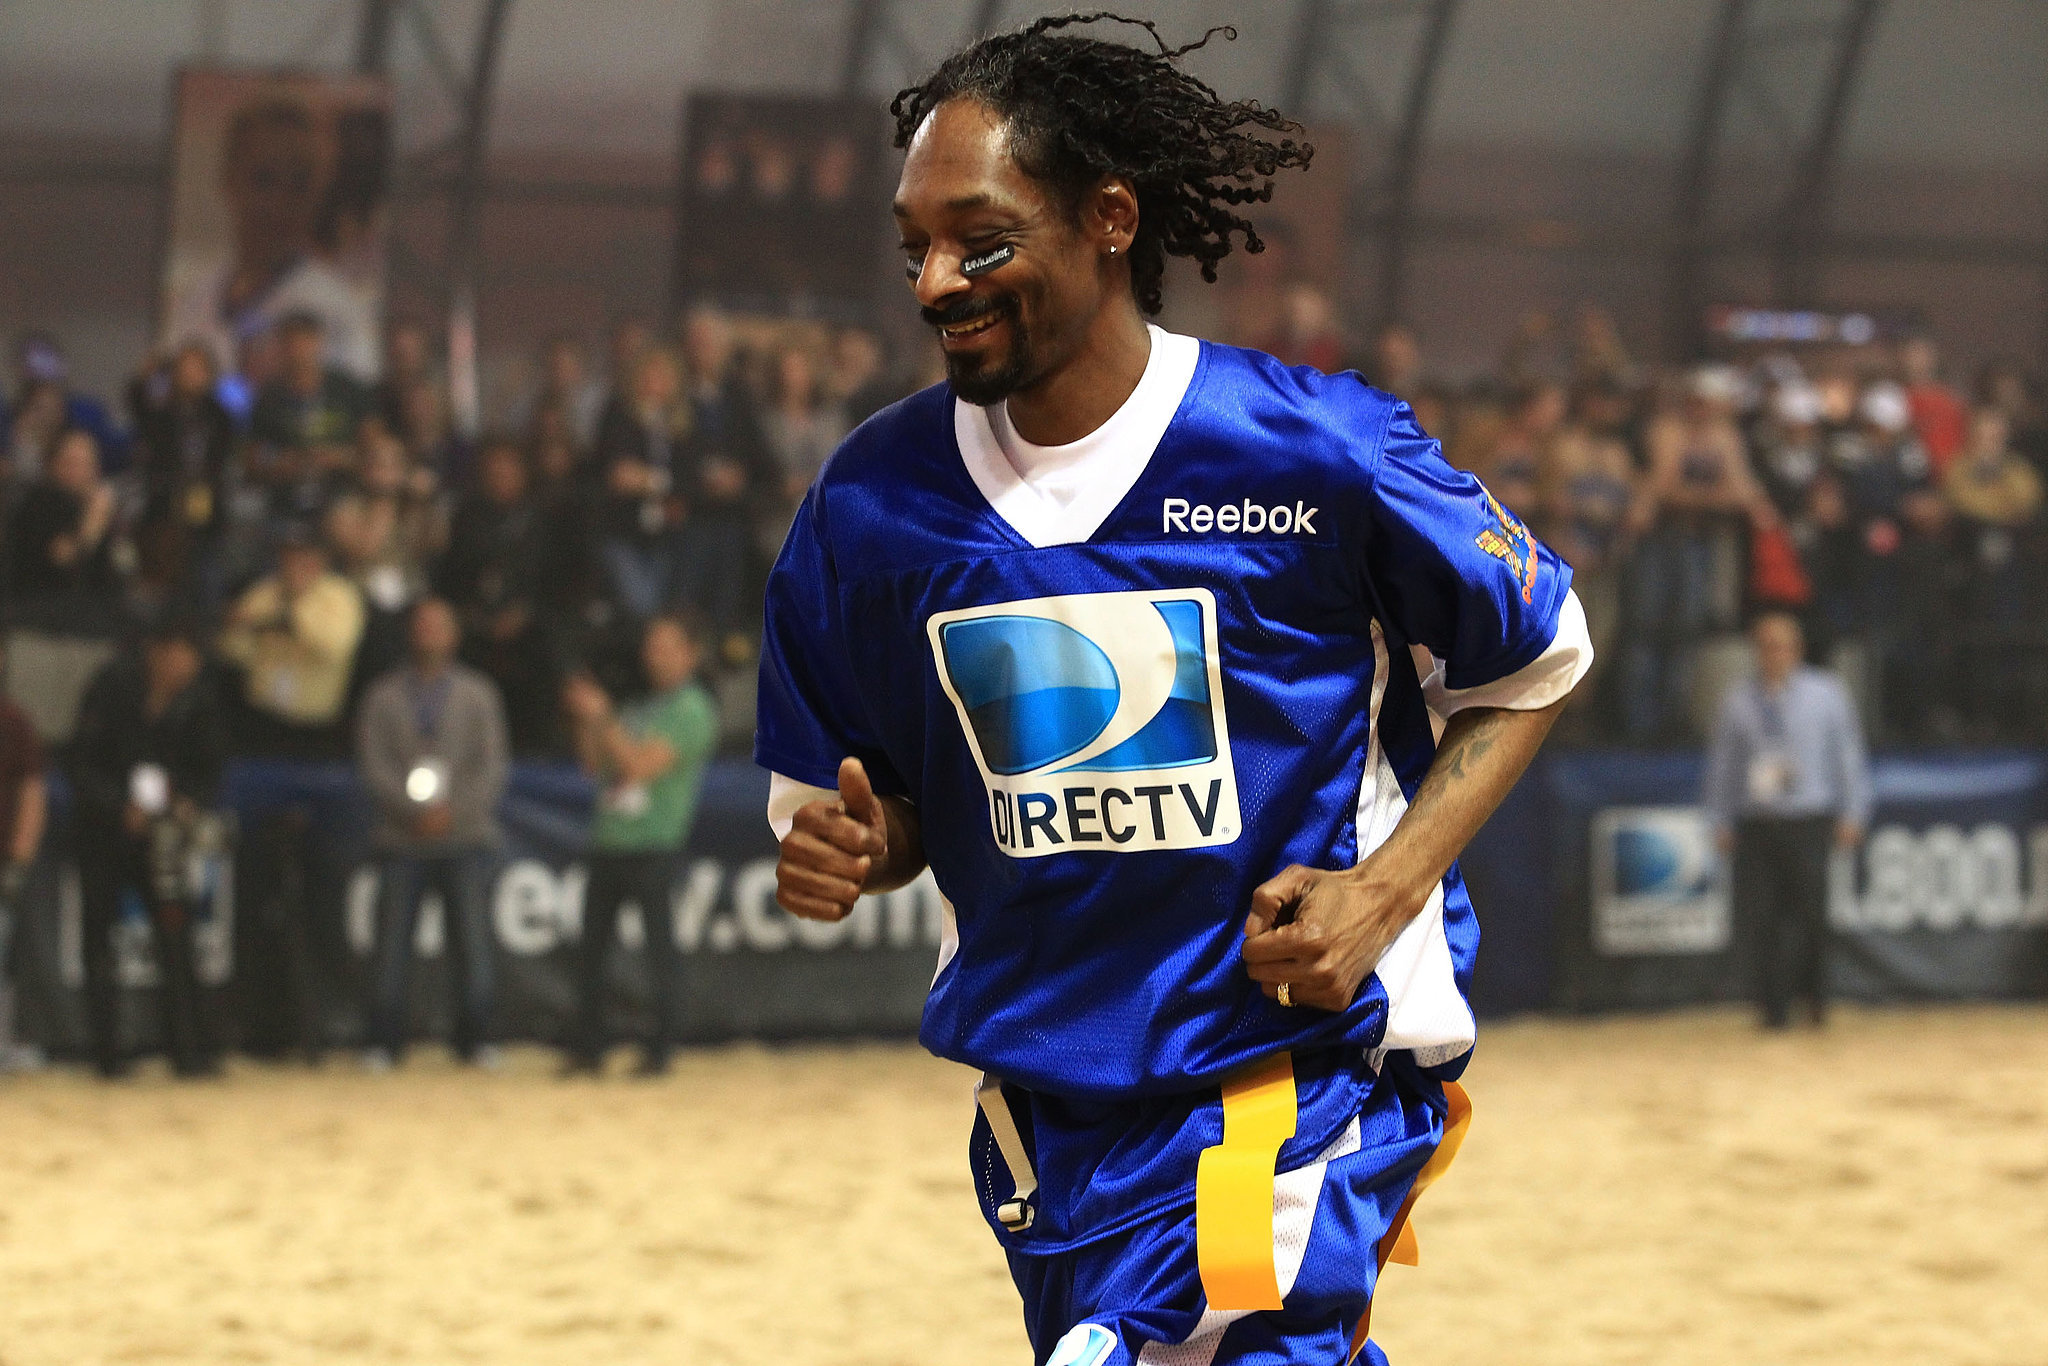 Snoop Dogg jogged it off during the celebrity football game in 2012.